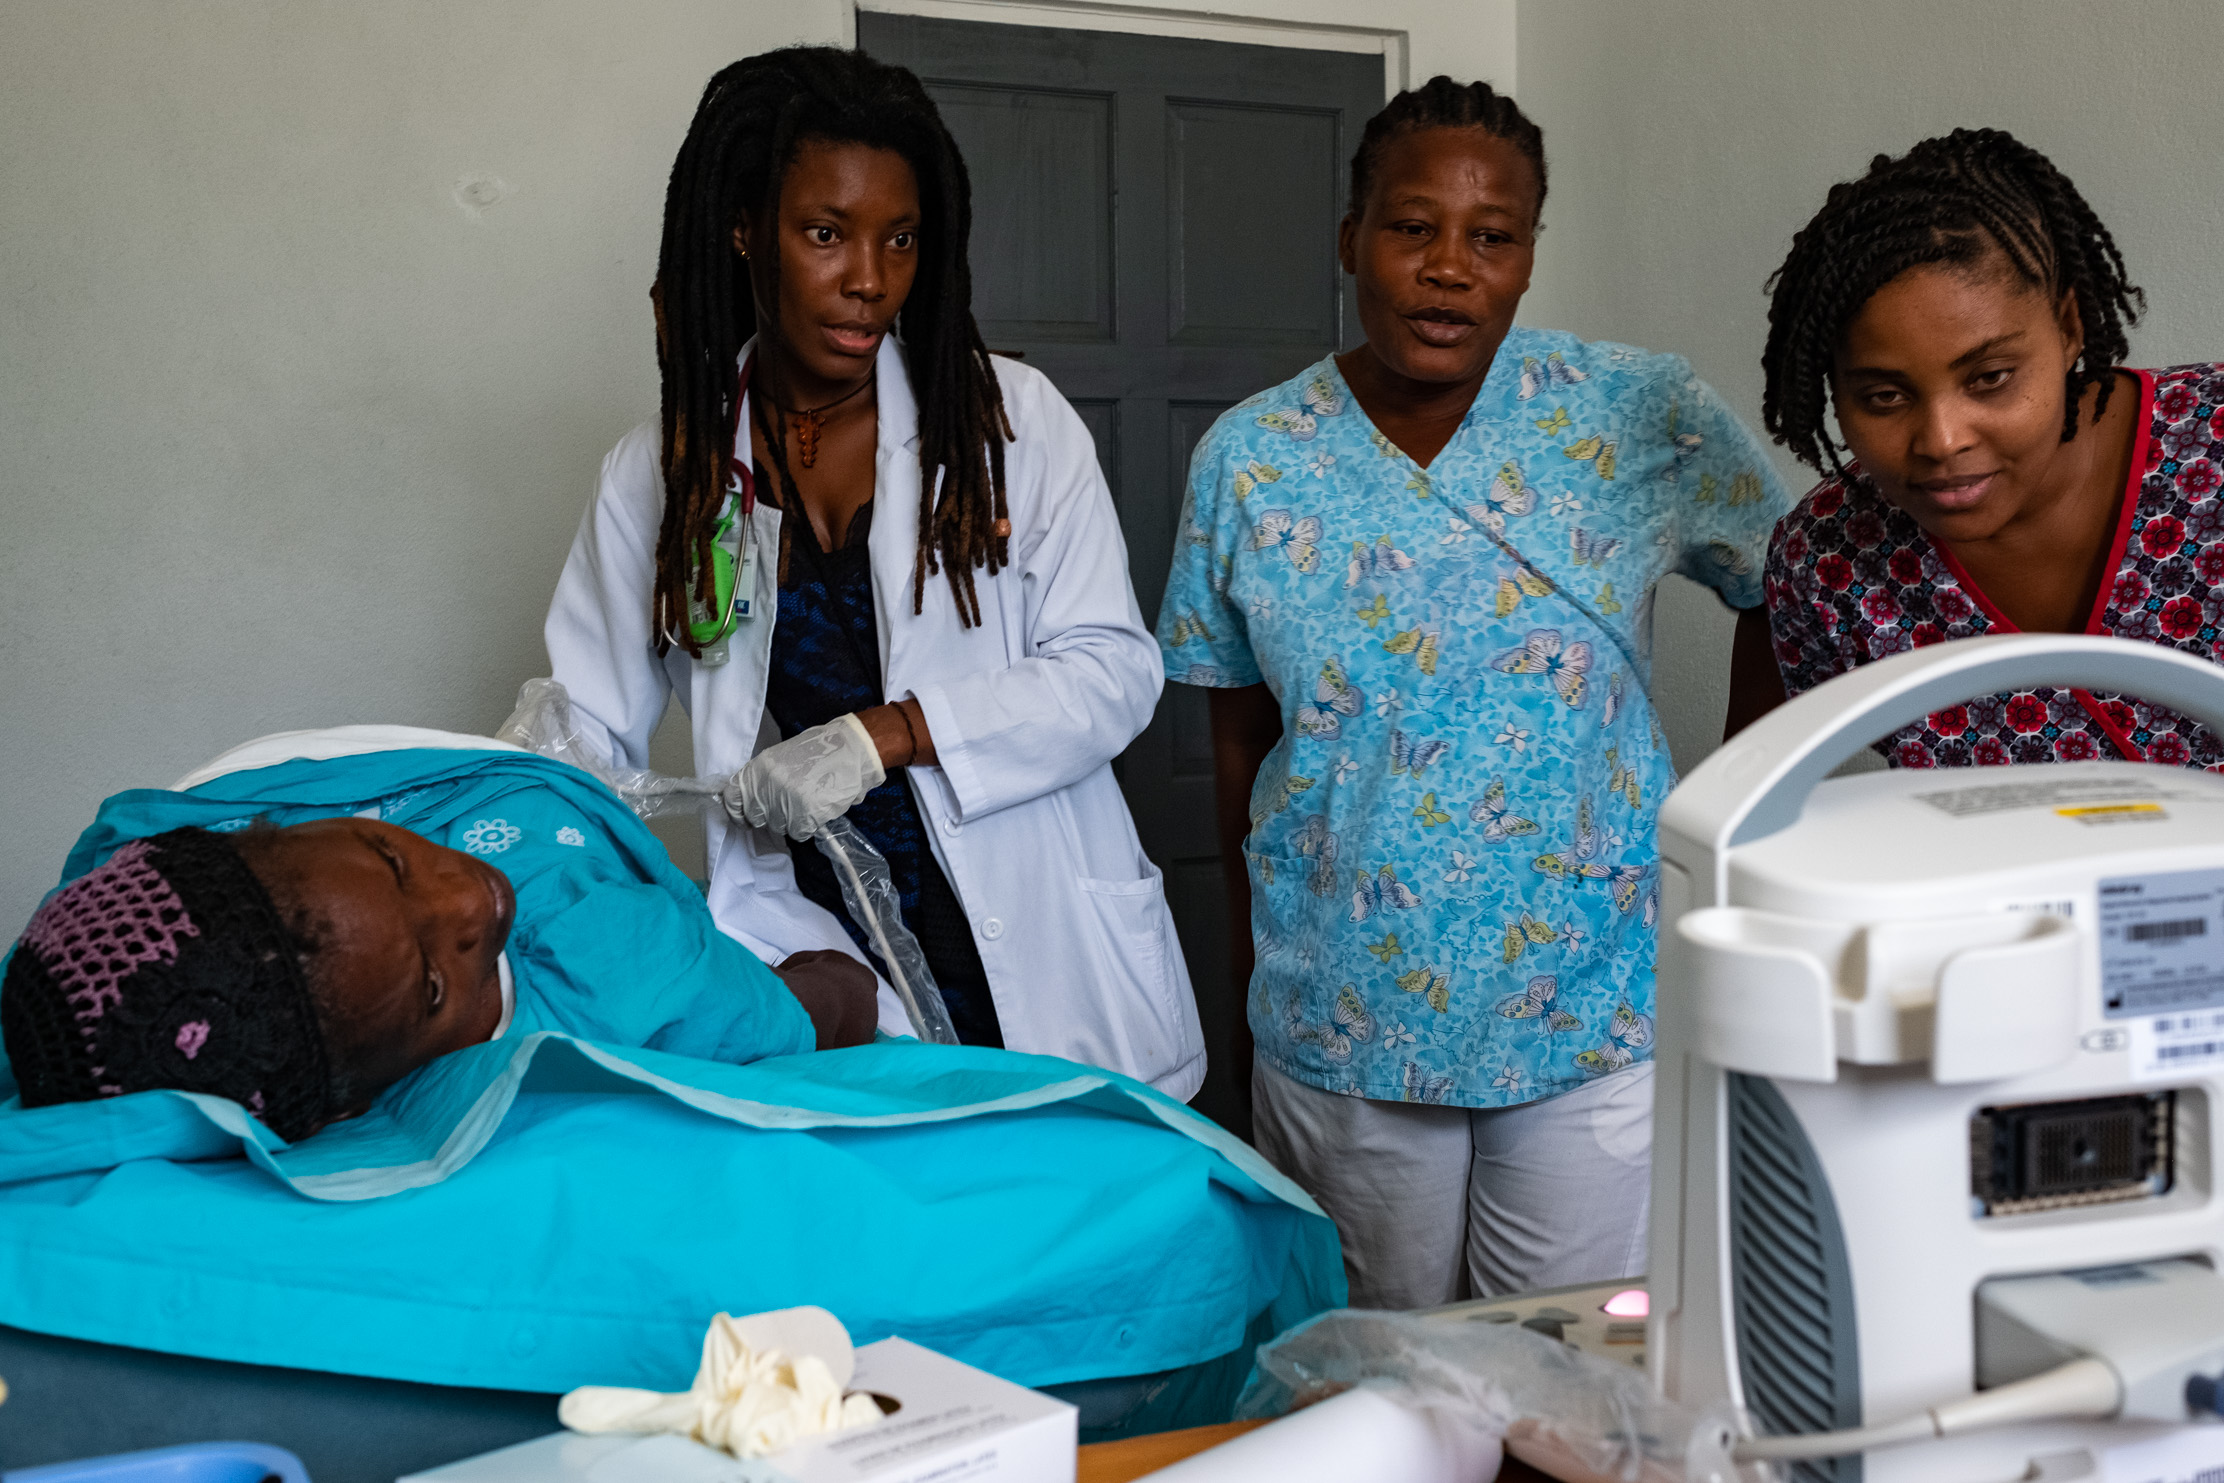 Dr. Darline Molin Dol, Medical Director of the Project Medishare Centre de Santé/Maternite de Lahoye started sharing her new knowledge and teaching her nurses with her very first scan. She also shows them how to use the 7D Imaging NAV software as an ongoing resource providing tools for continued self-learning.